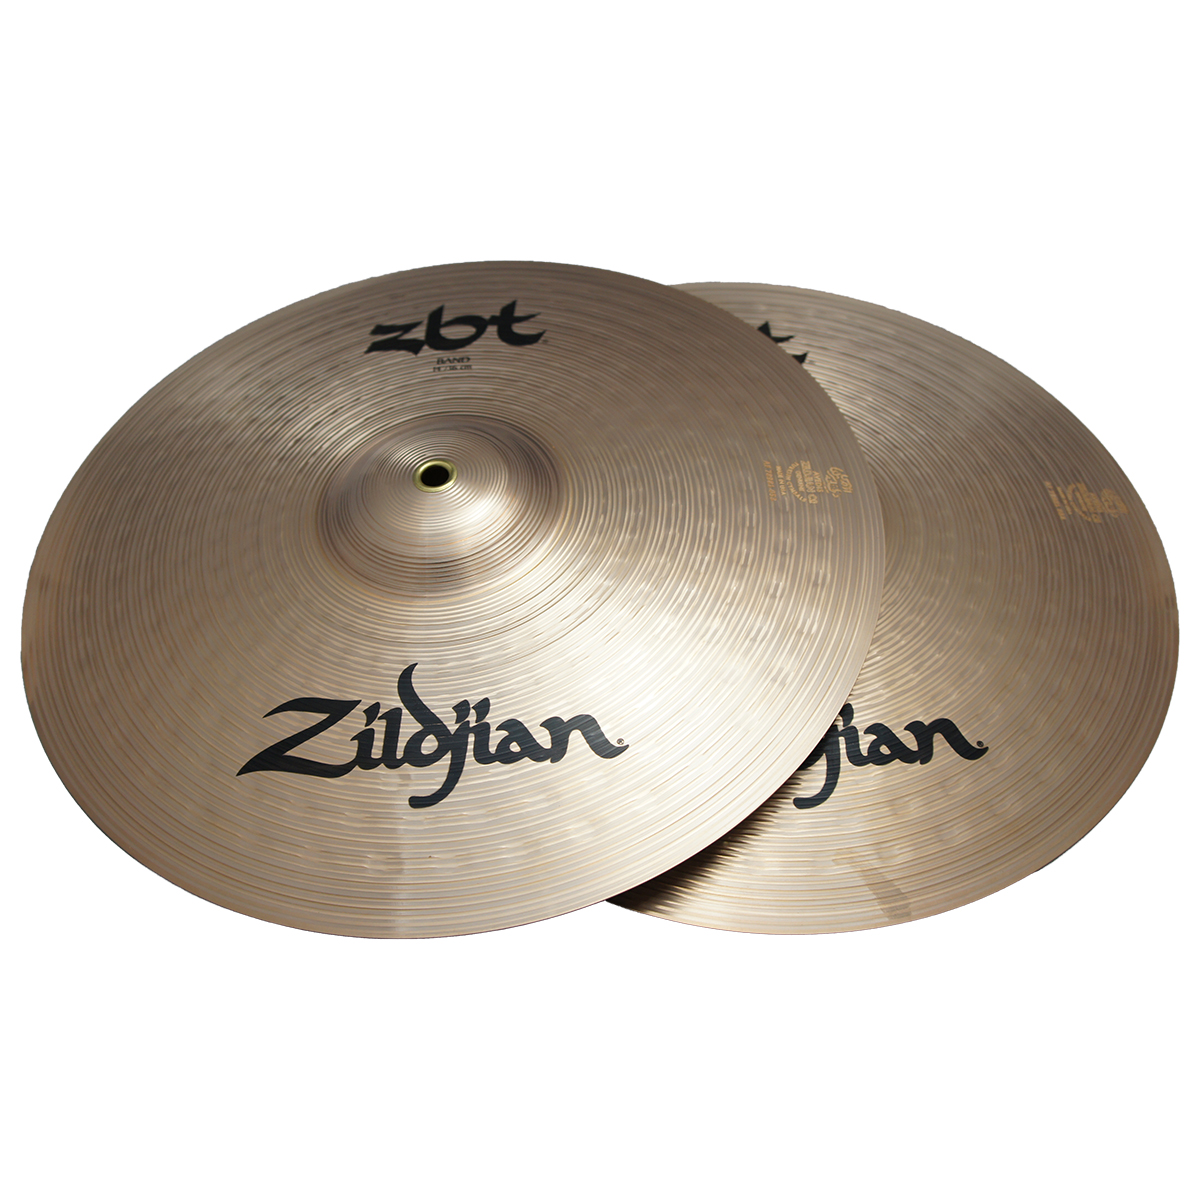 "Zildjian 14"" Zbt Band One Only Hand type with Medium Profile 14"" ZBT14BO"